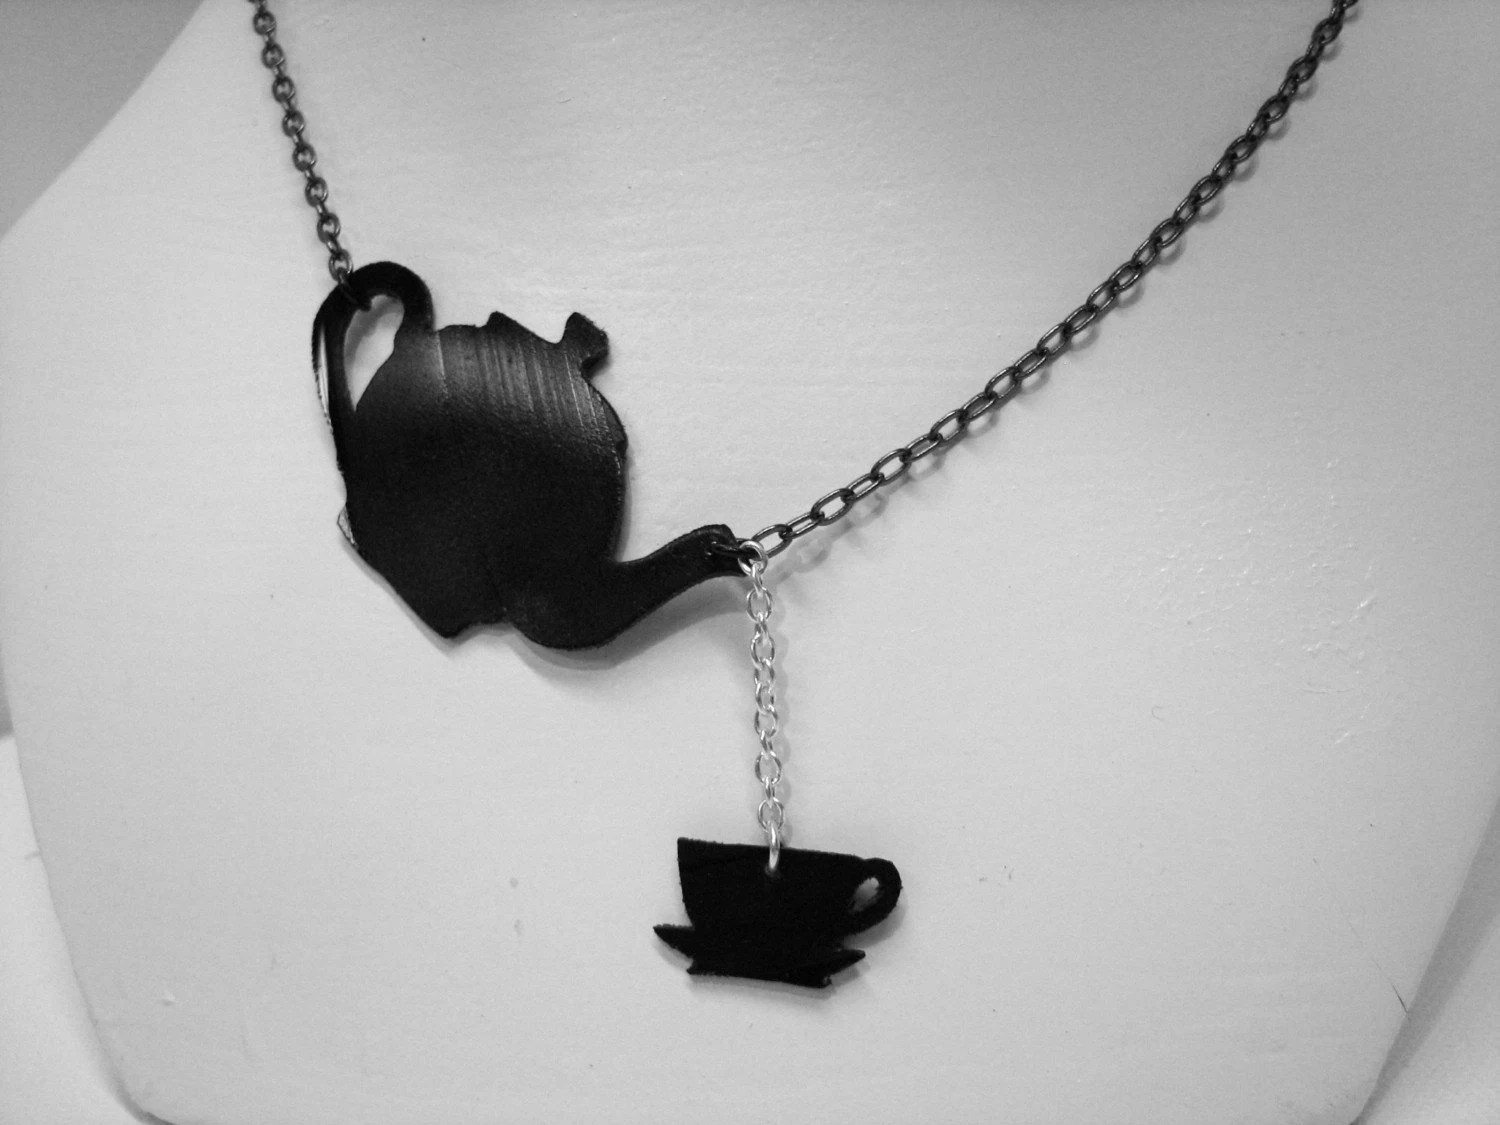 Tea Time Silhouette Recycled Vinyl Necklace by RandomPerfect